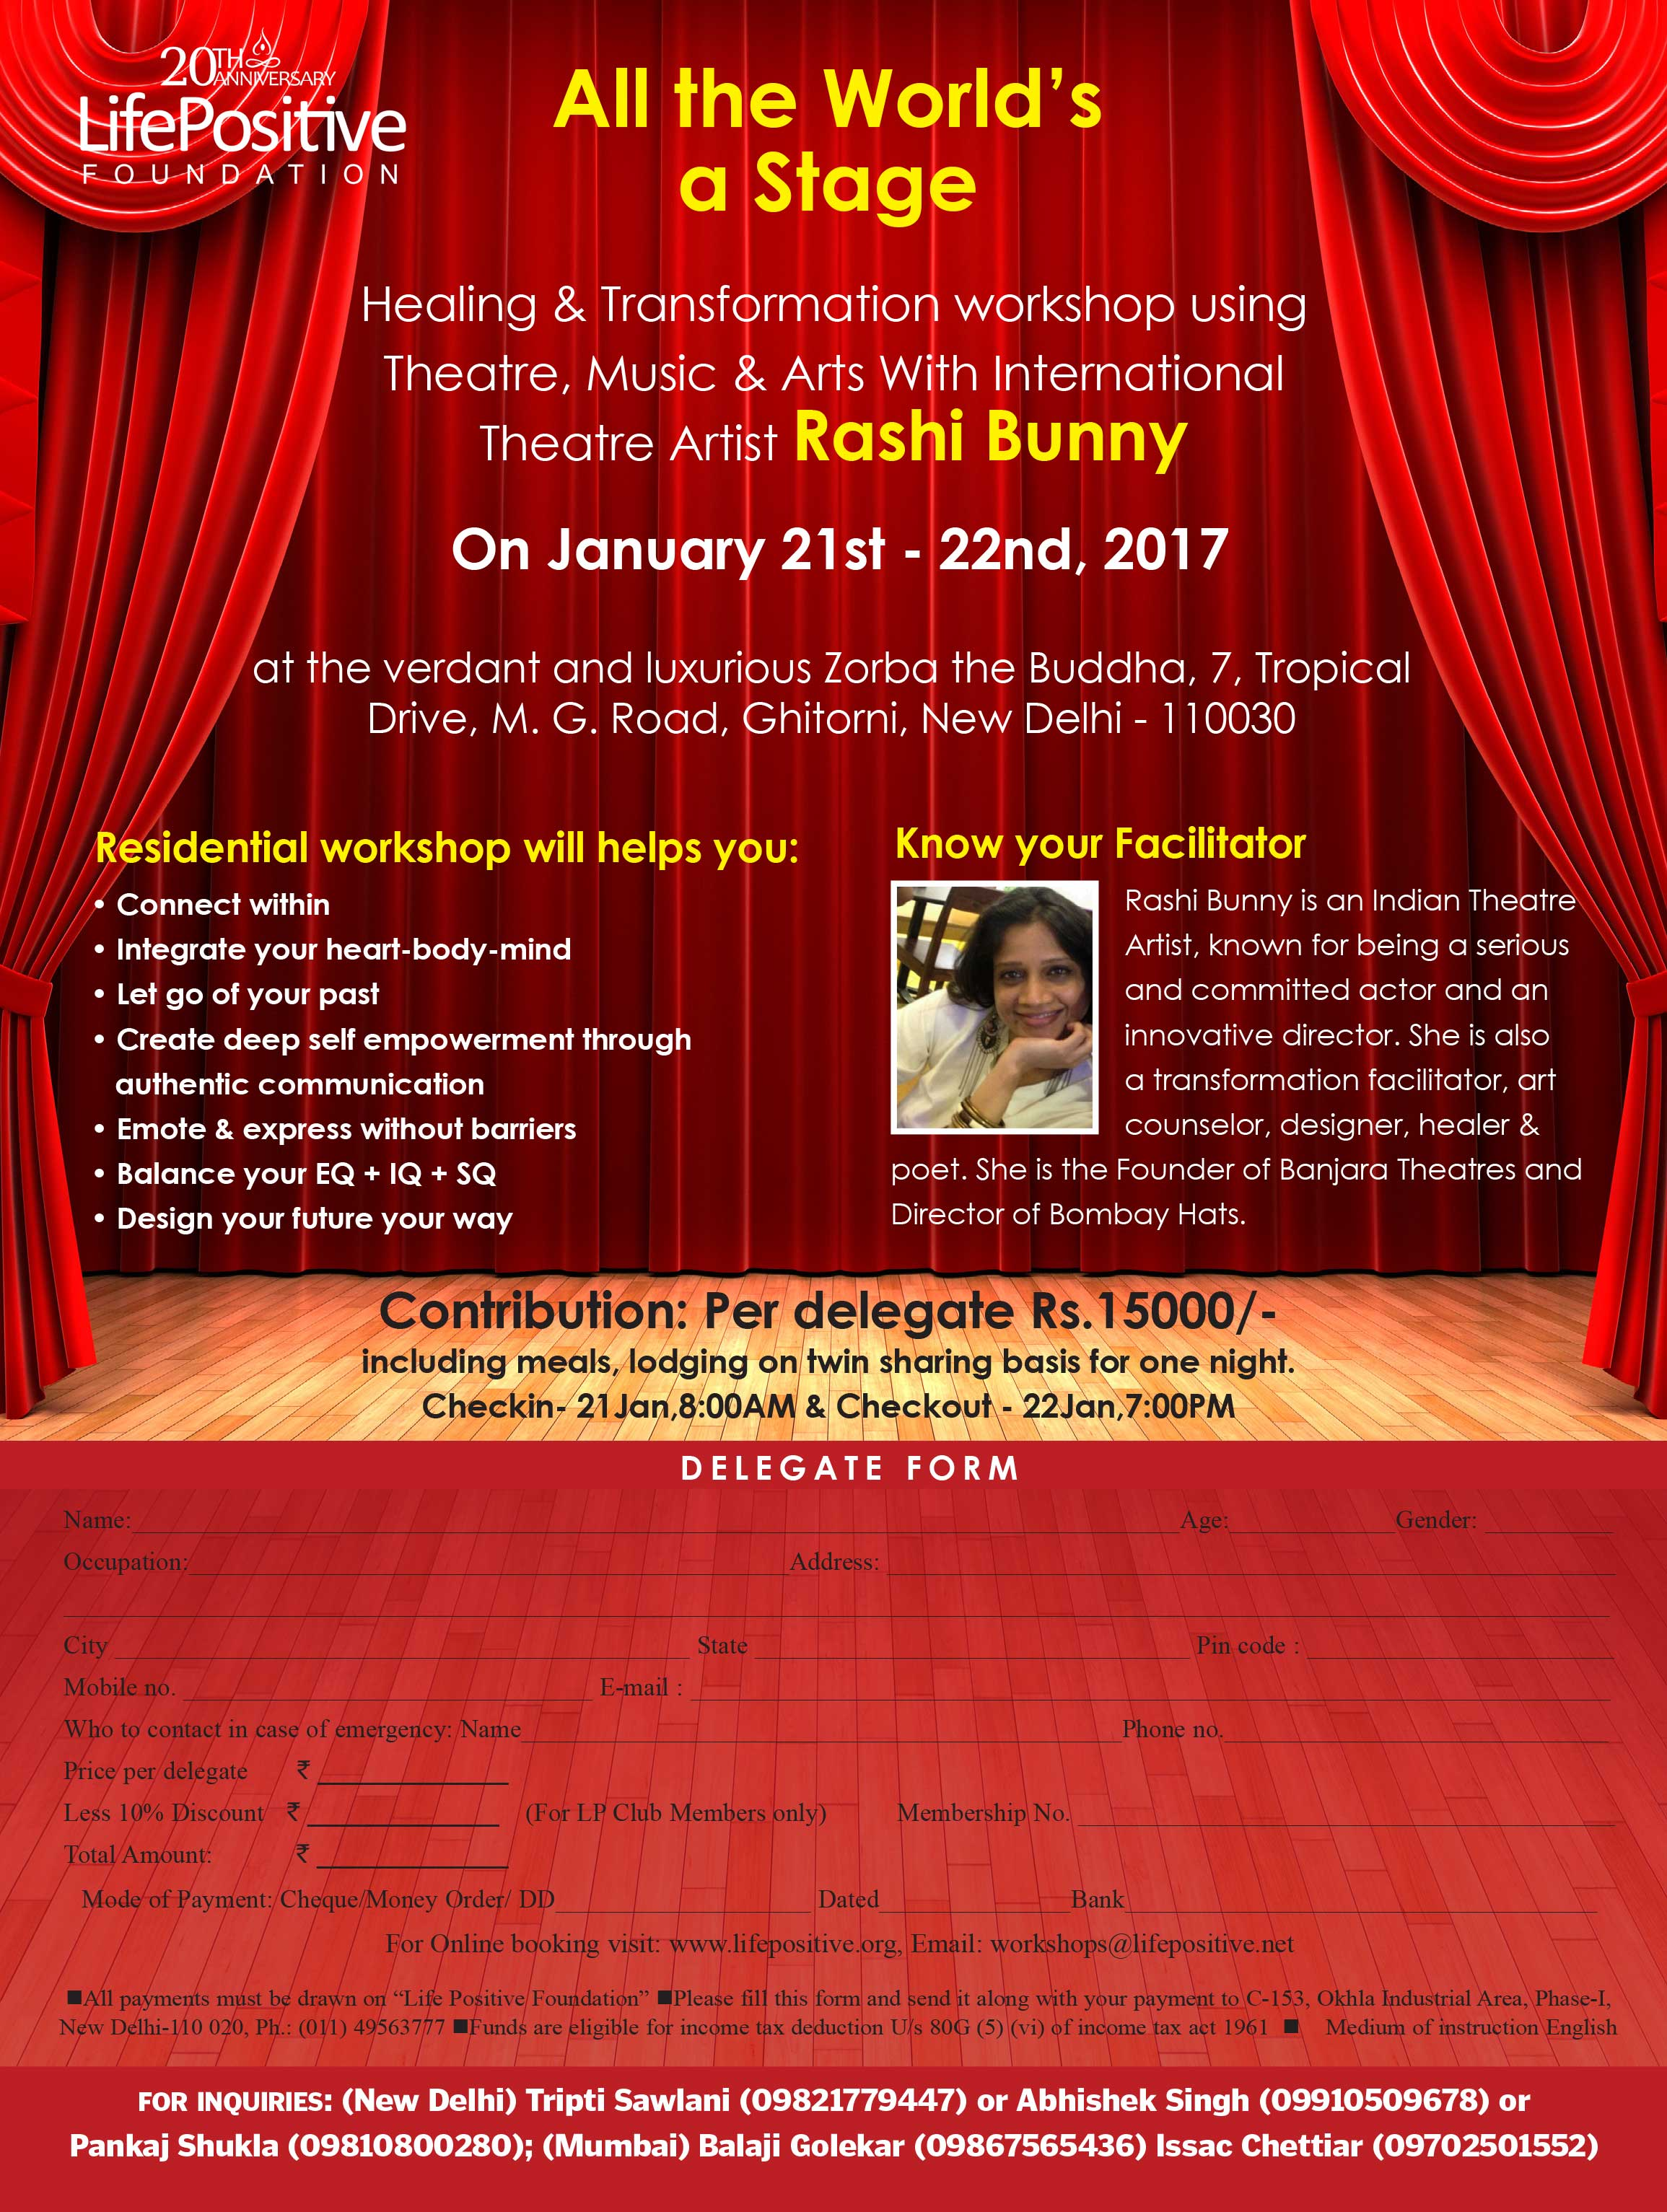 Healing and transformation with international theatre artist Rashi Bunny